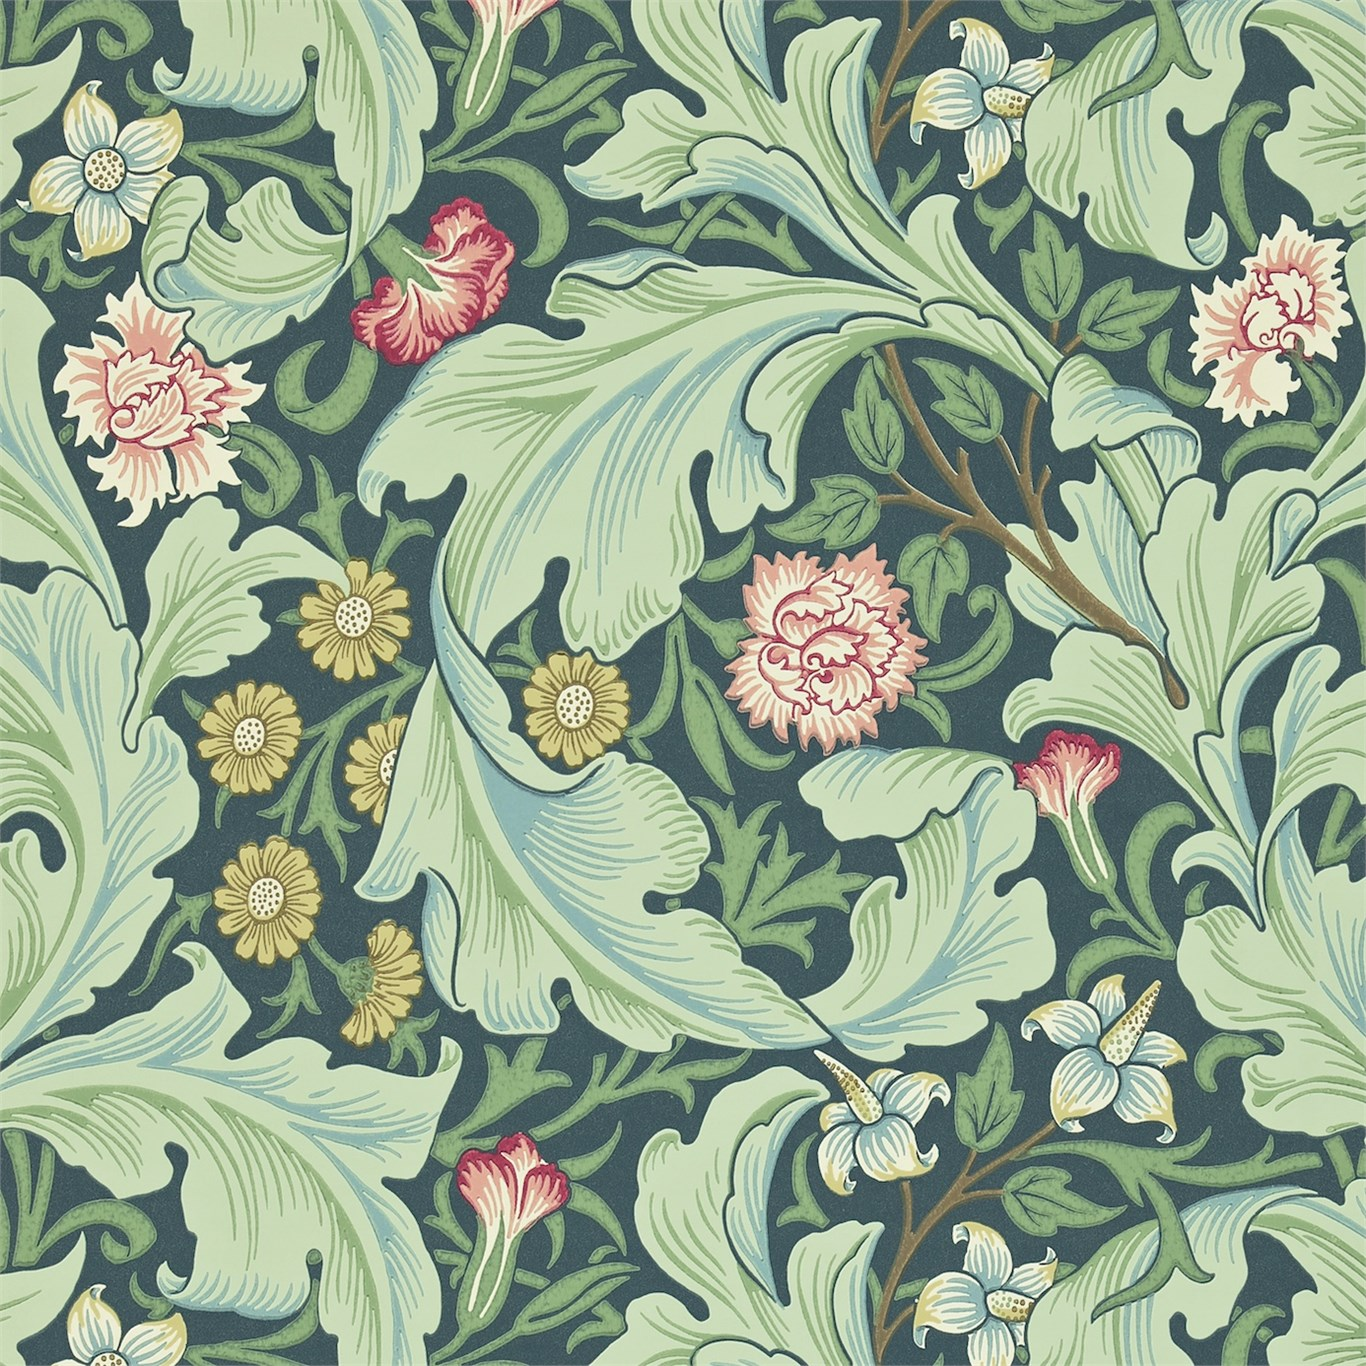 William Morris Wallpaper Images